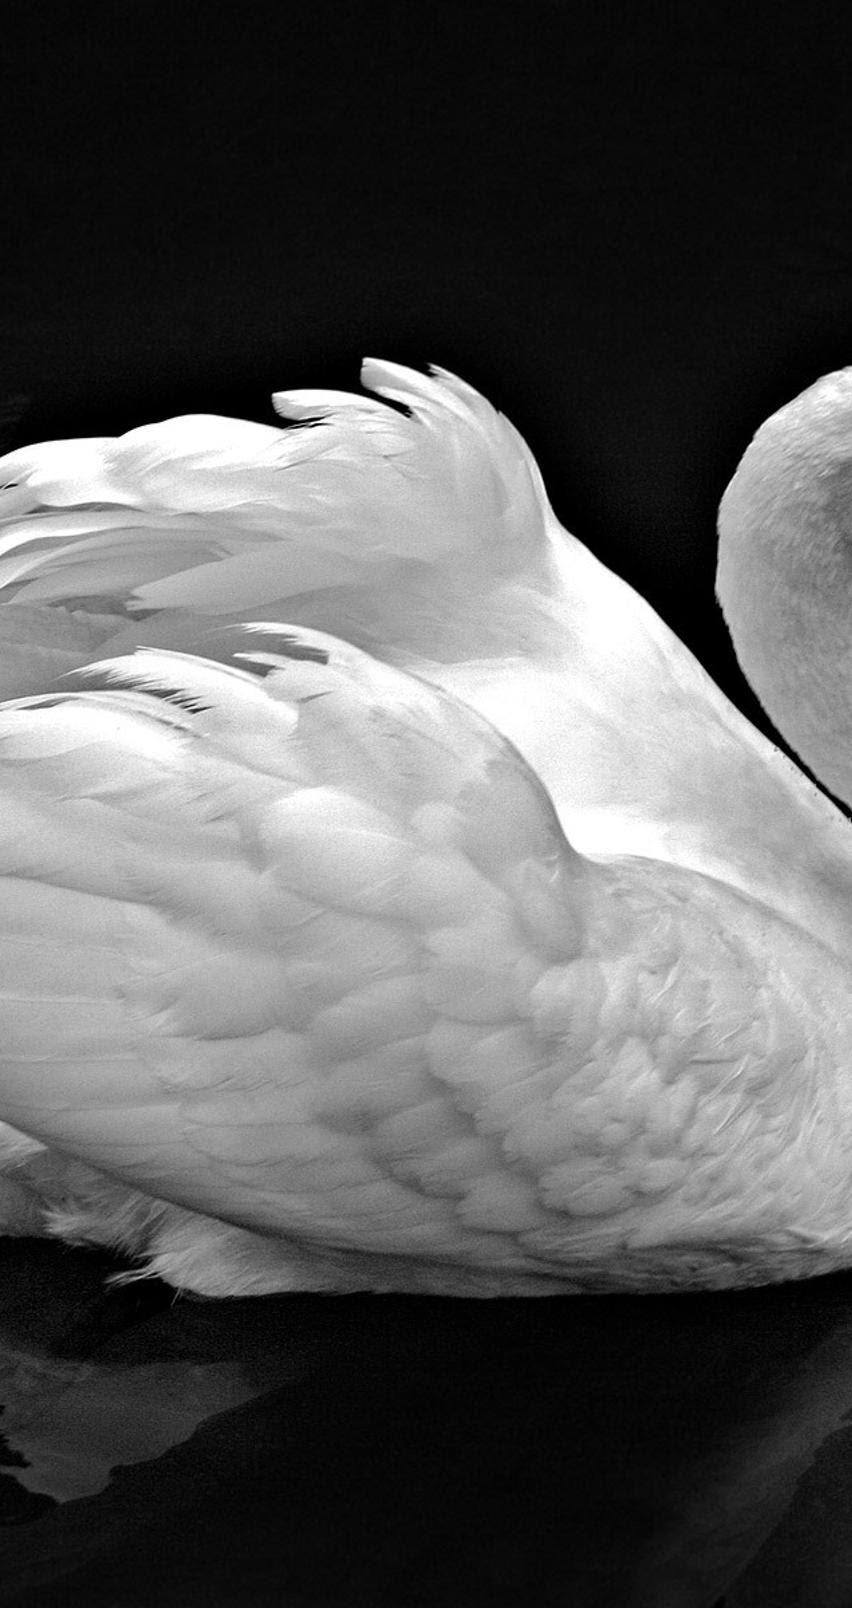 Wallpaper Hd 1080p Black And White Swan Pixell Wallpapers